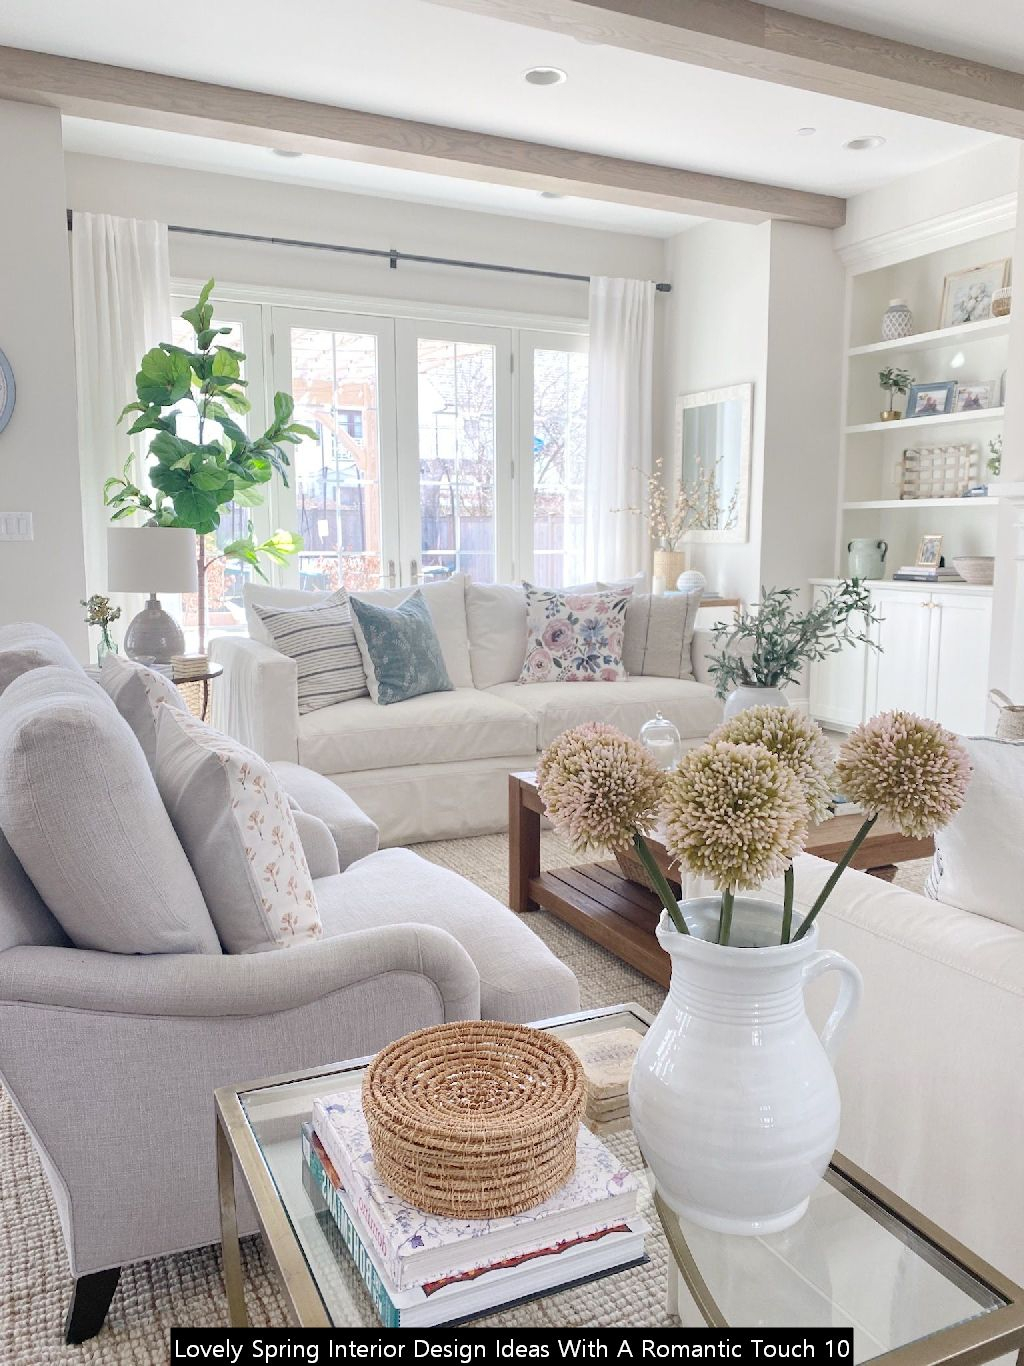 Lovely Spring Interior Design Ideas With A Romantic Touch 10